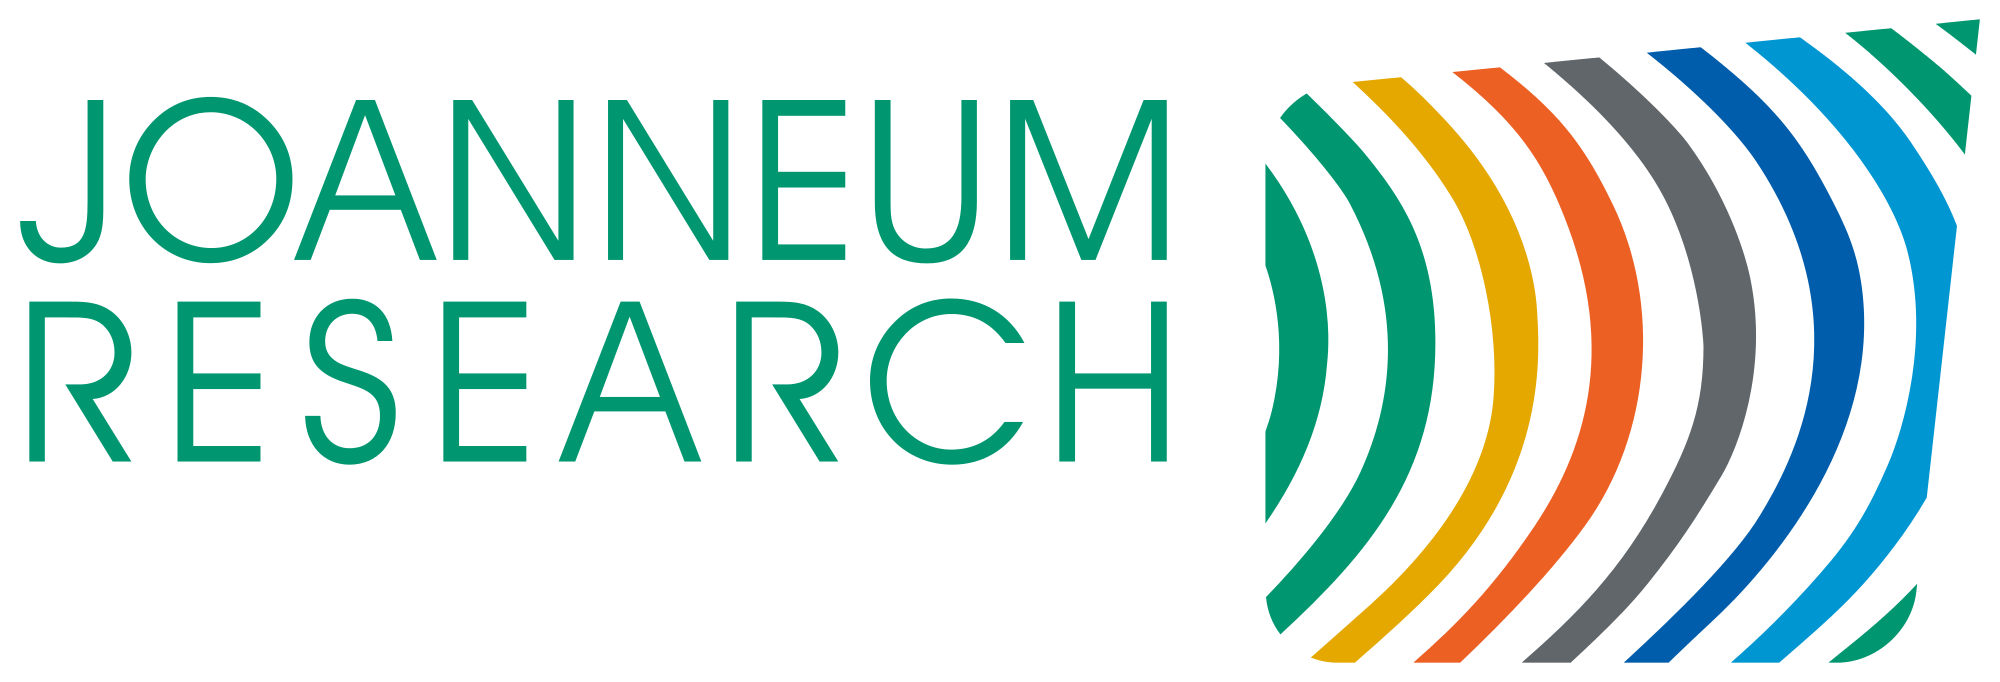 JOANNEUM RESEARCH Logo.png